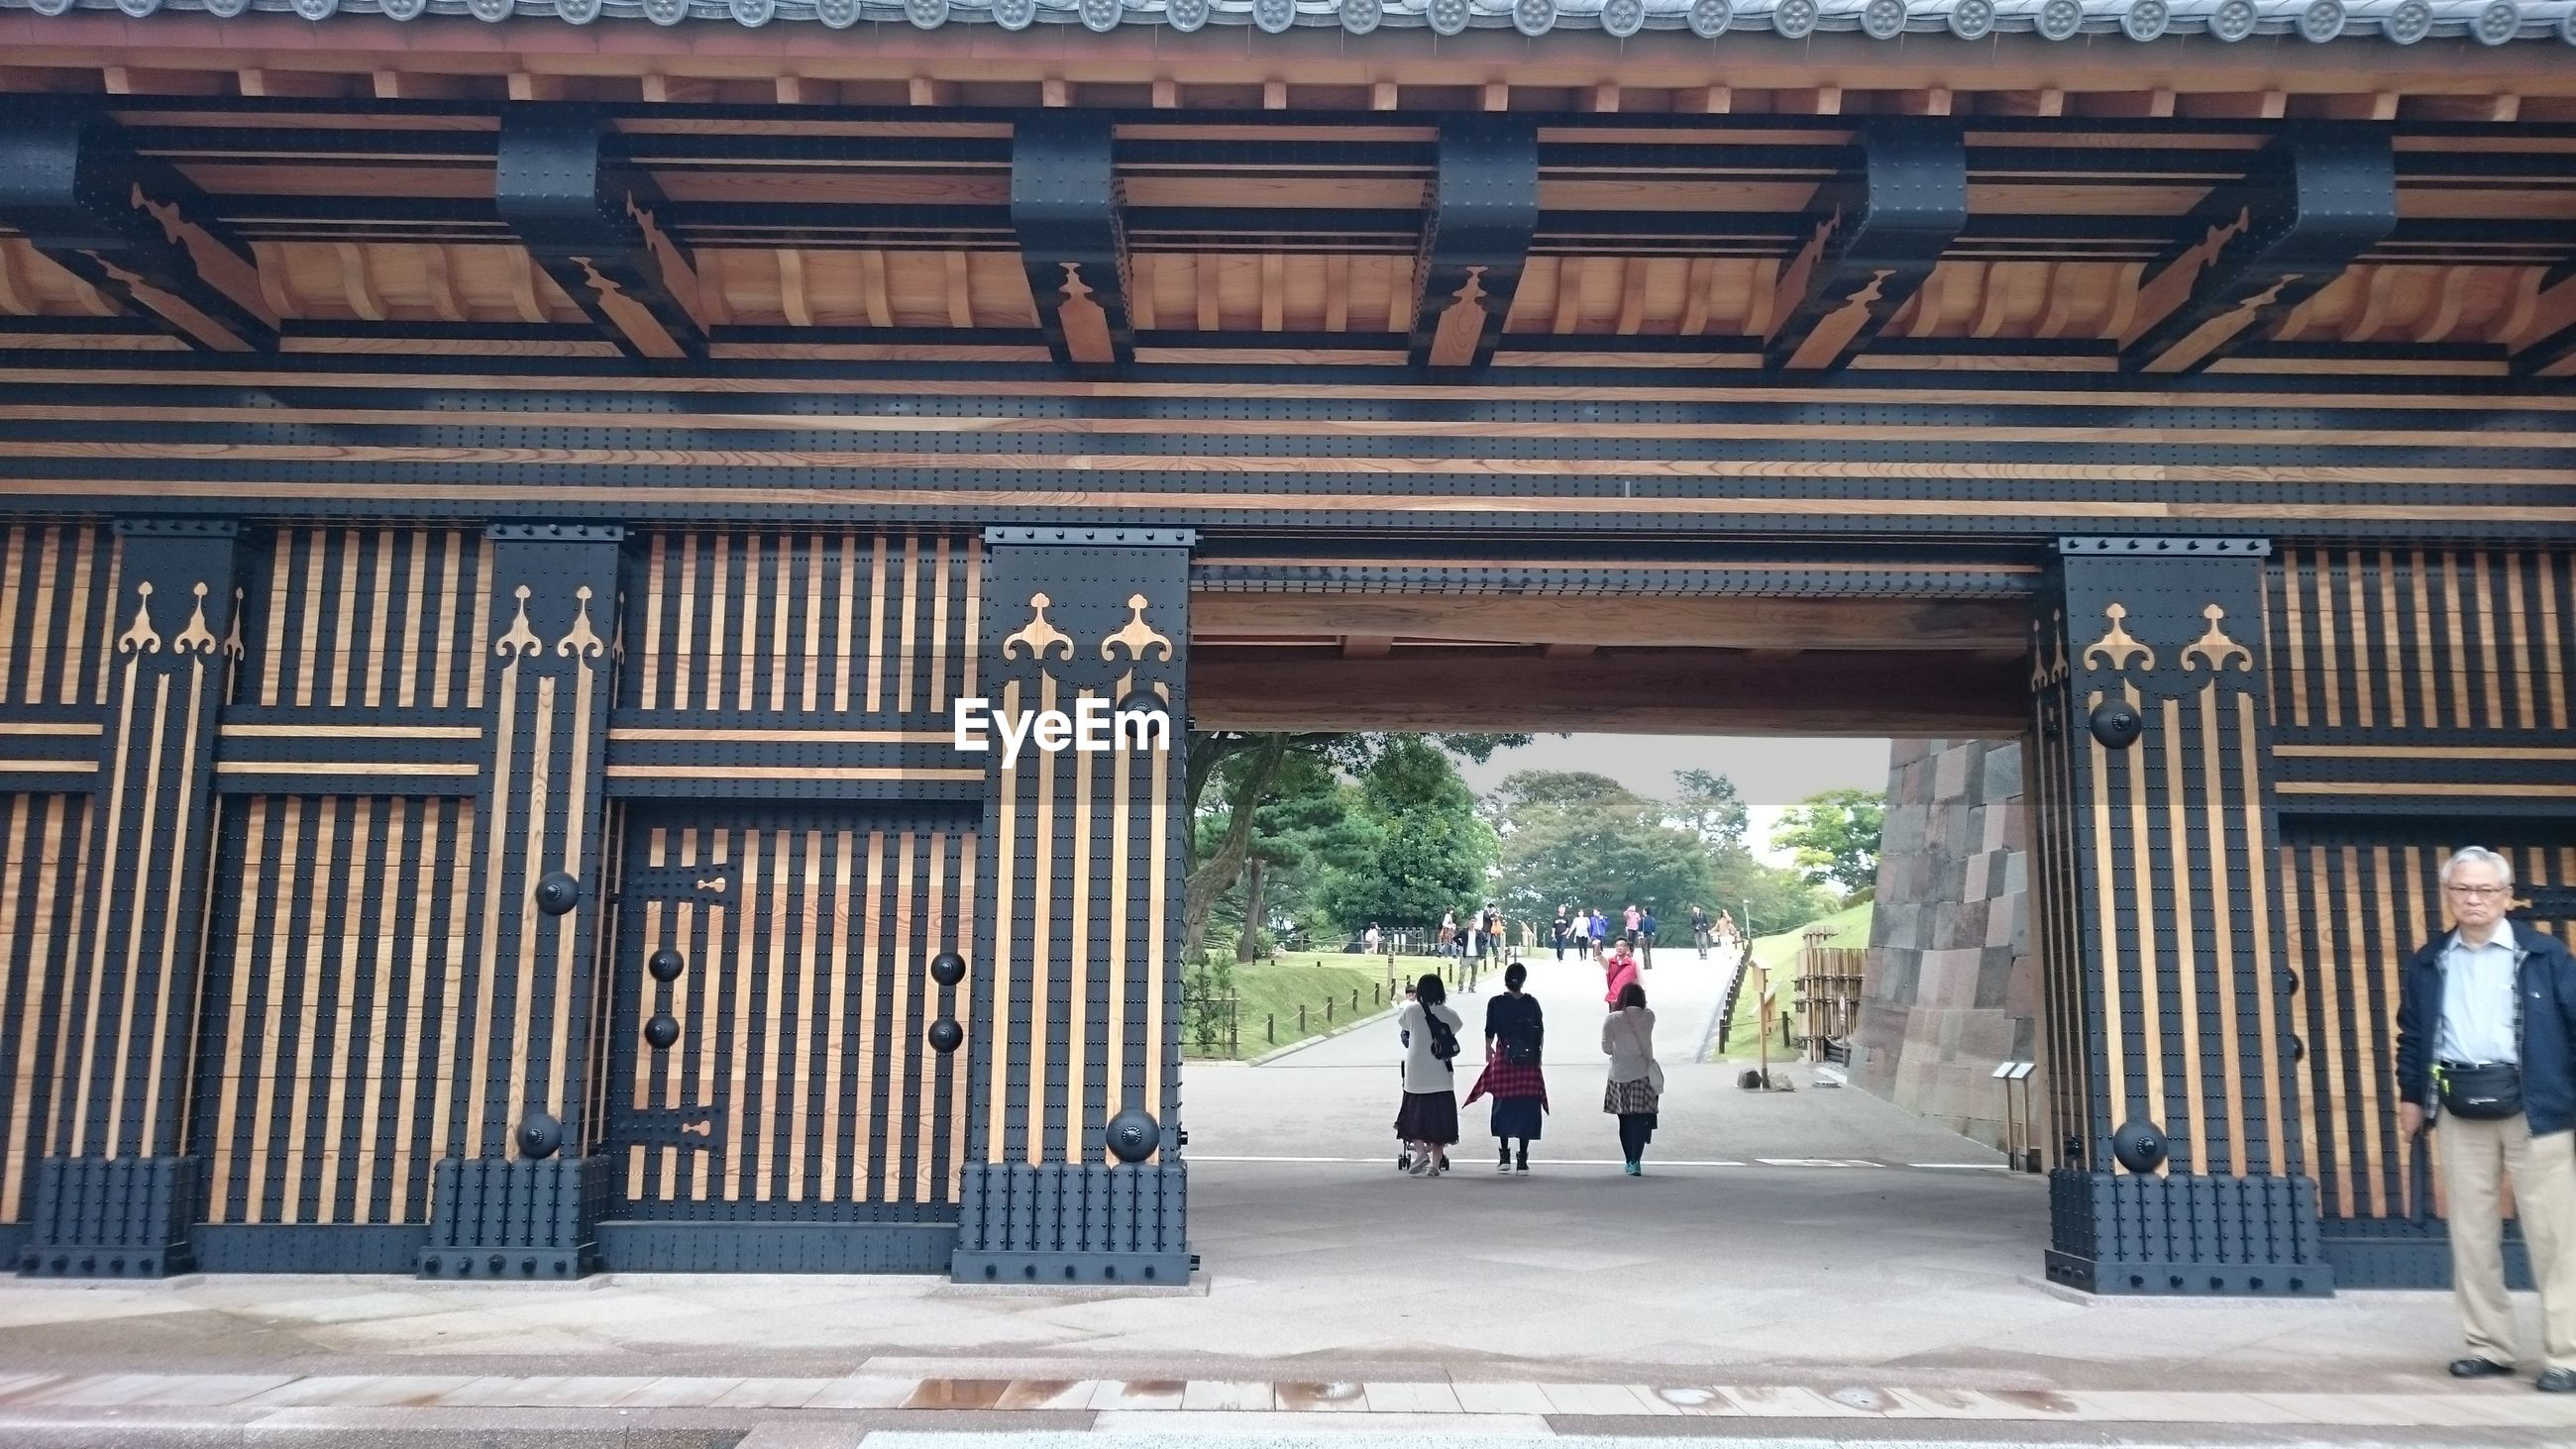 built structure, architecture, real people, building exterior, gate, day, men, architectural column, outdoors, full length, people